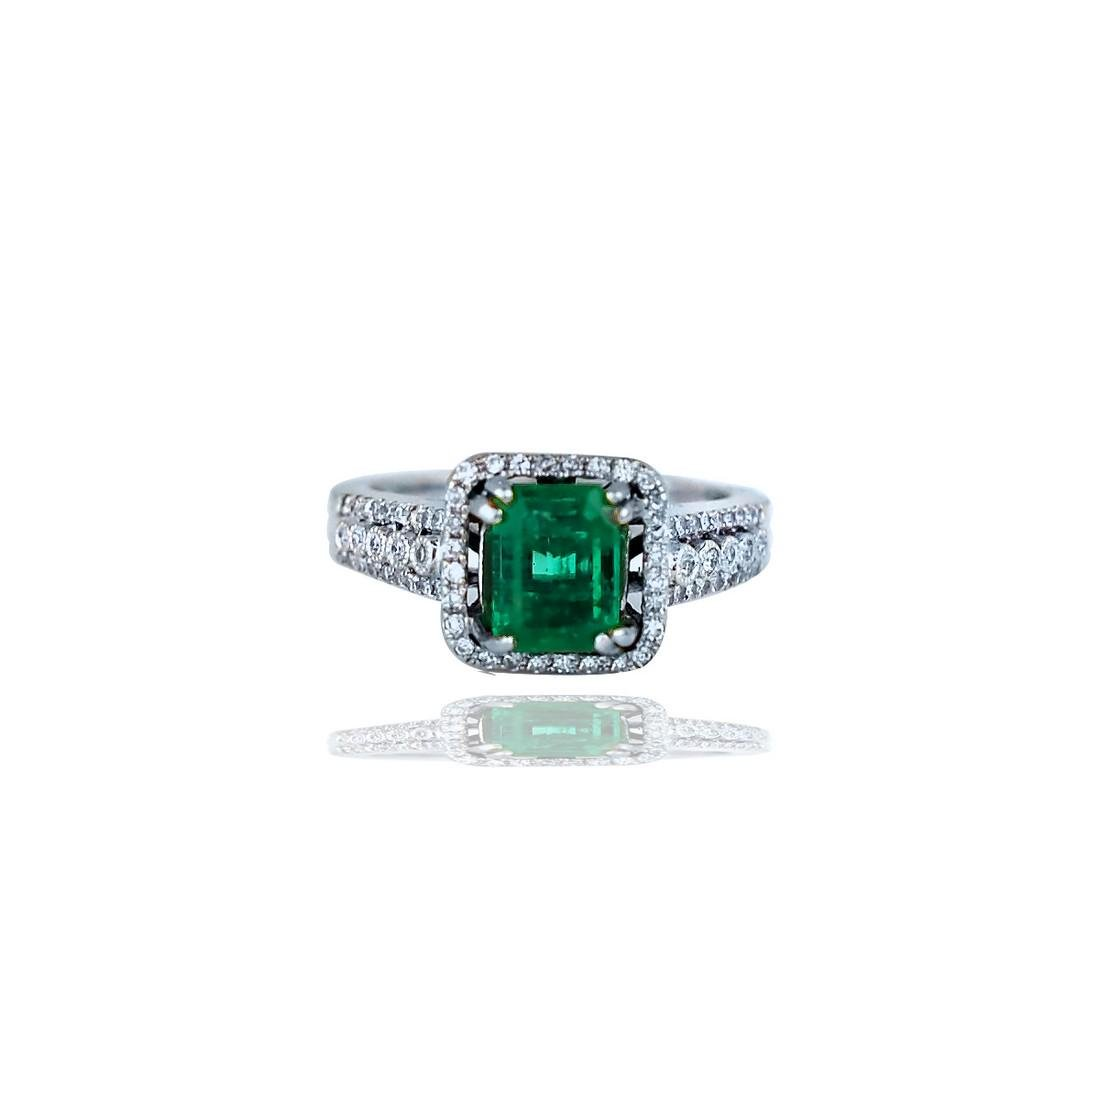 Stunning,  3.38 TCW, Colombian Emerald set in Halo